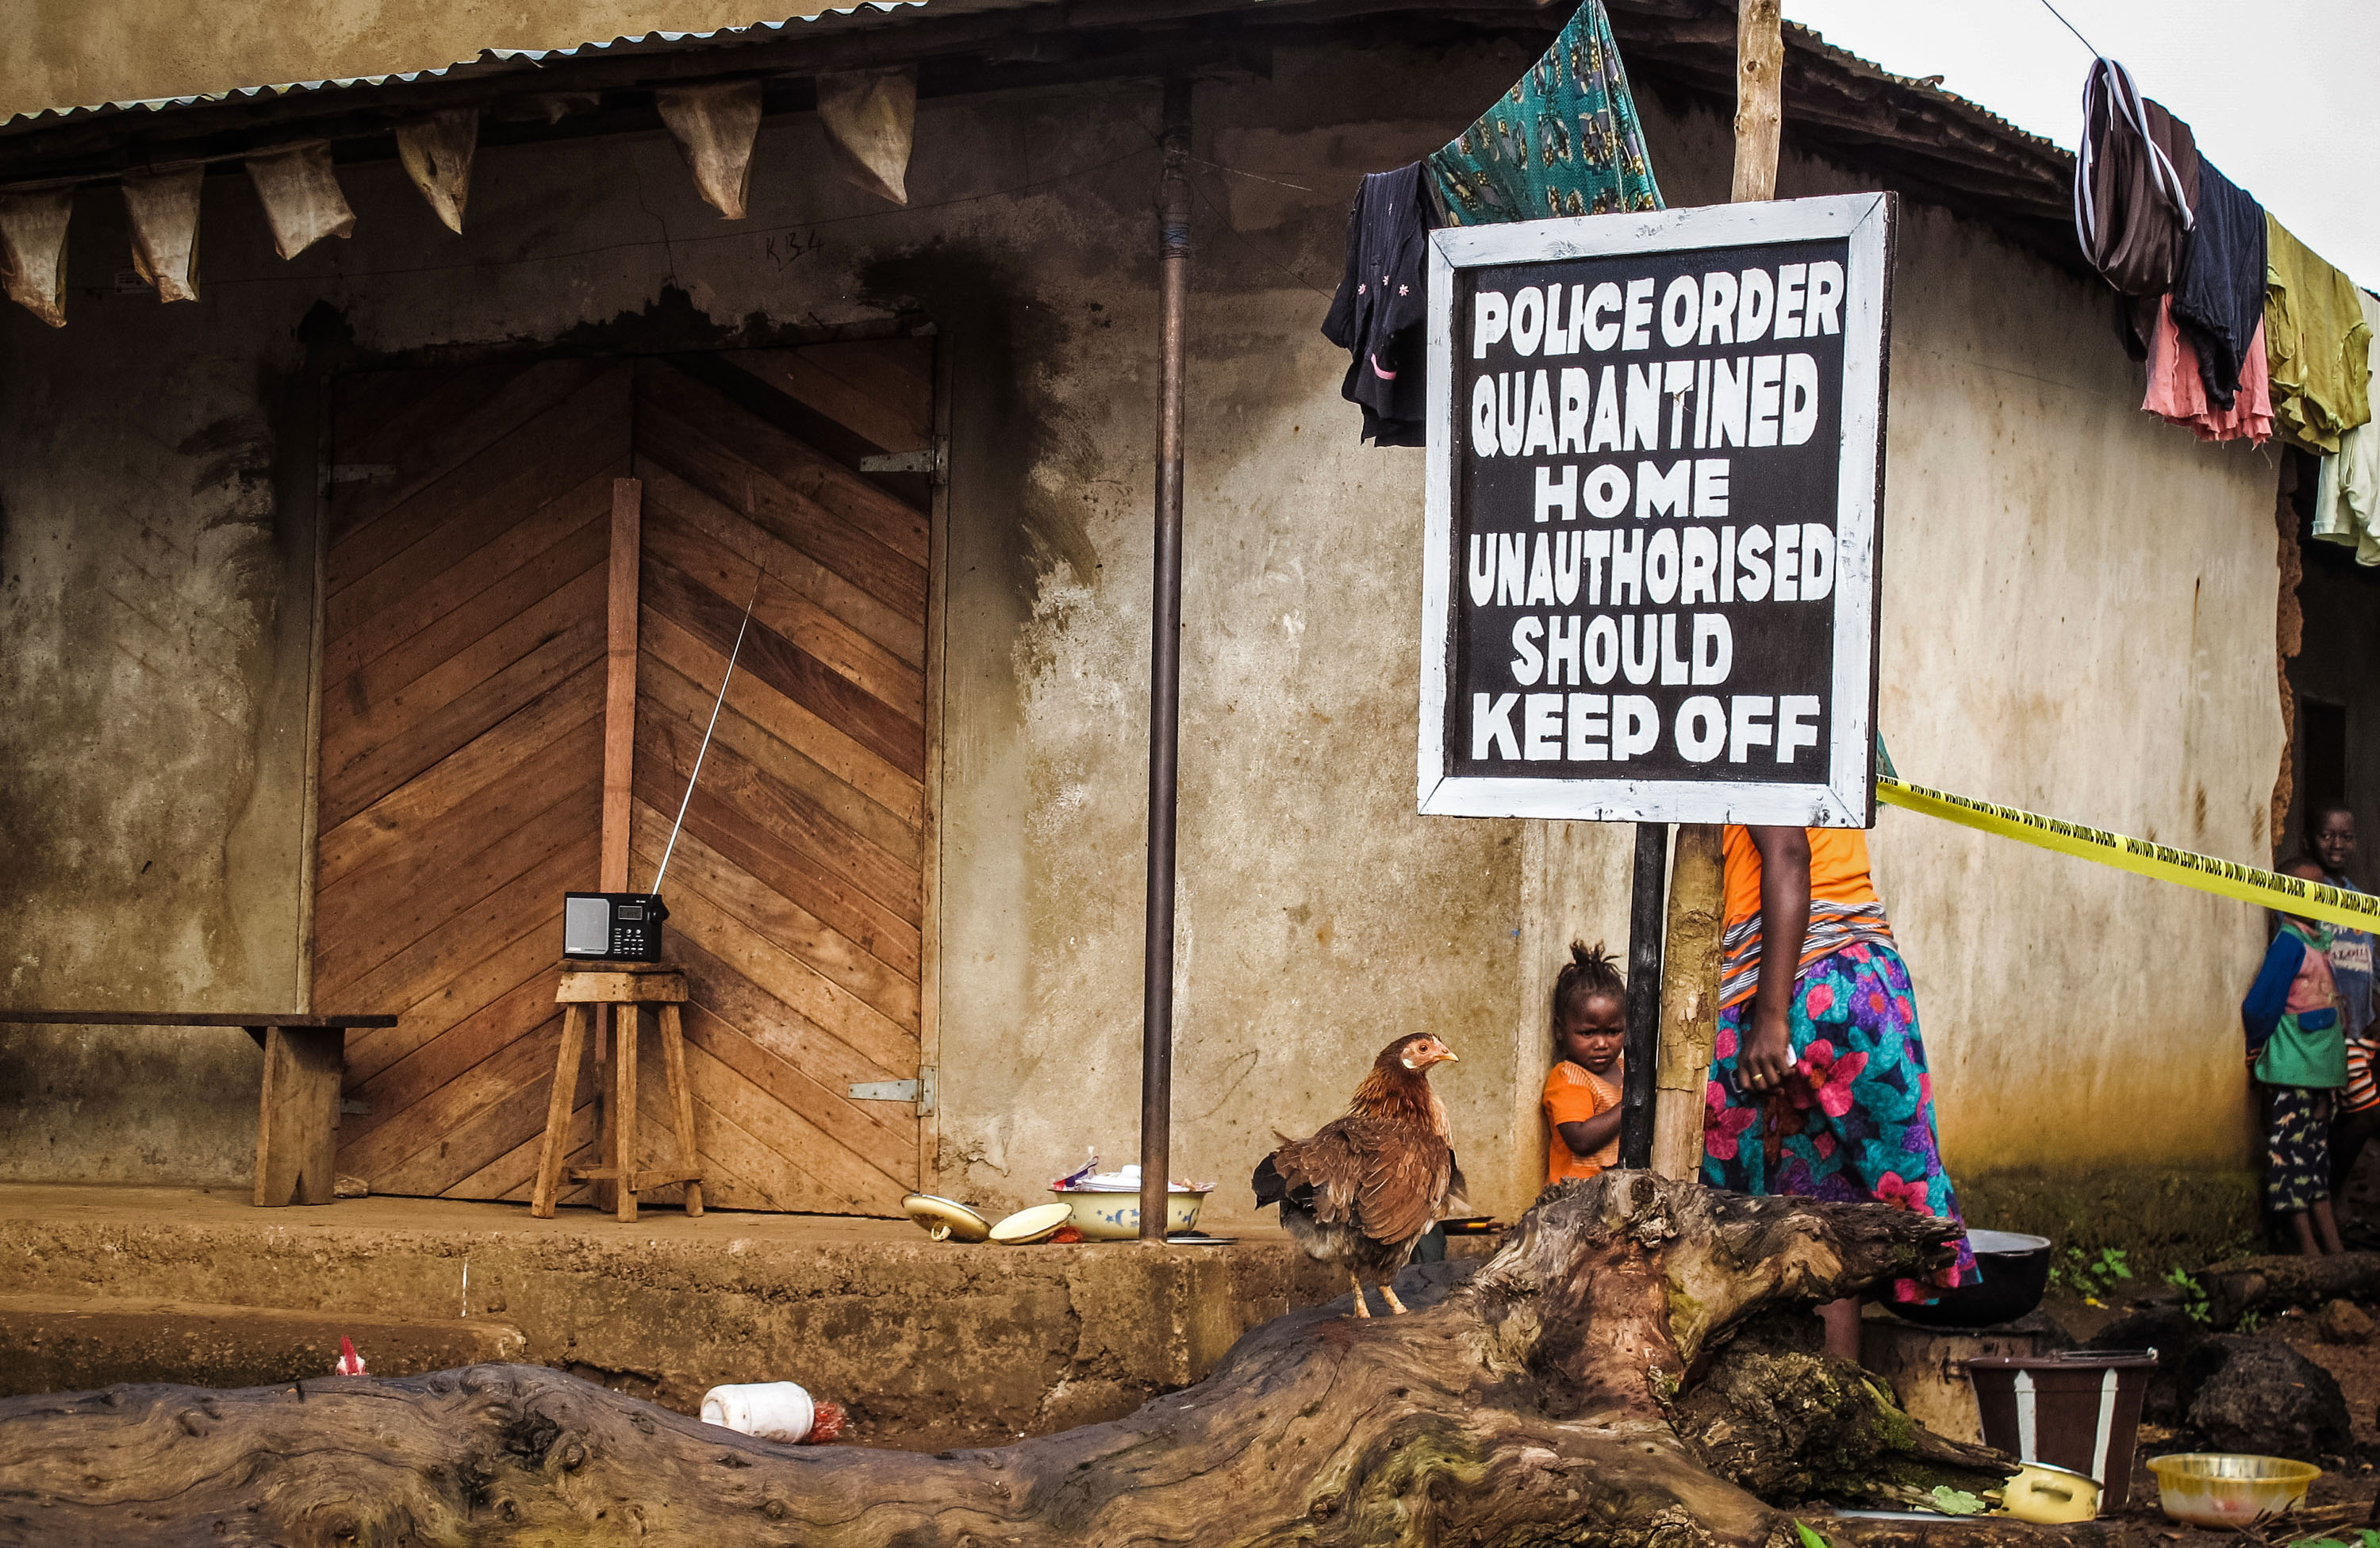 A home is quarantined in an effort to combat the spread of the Ebola virus, Port Loko, Sierra Leone, in 2014. (Photo: Michael Duff/AP)